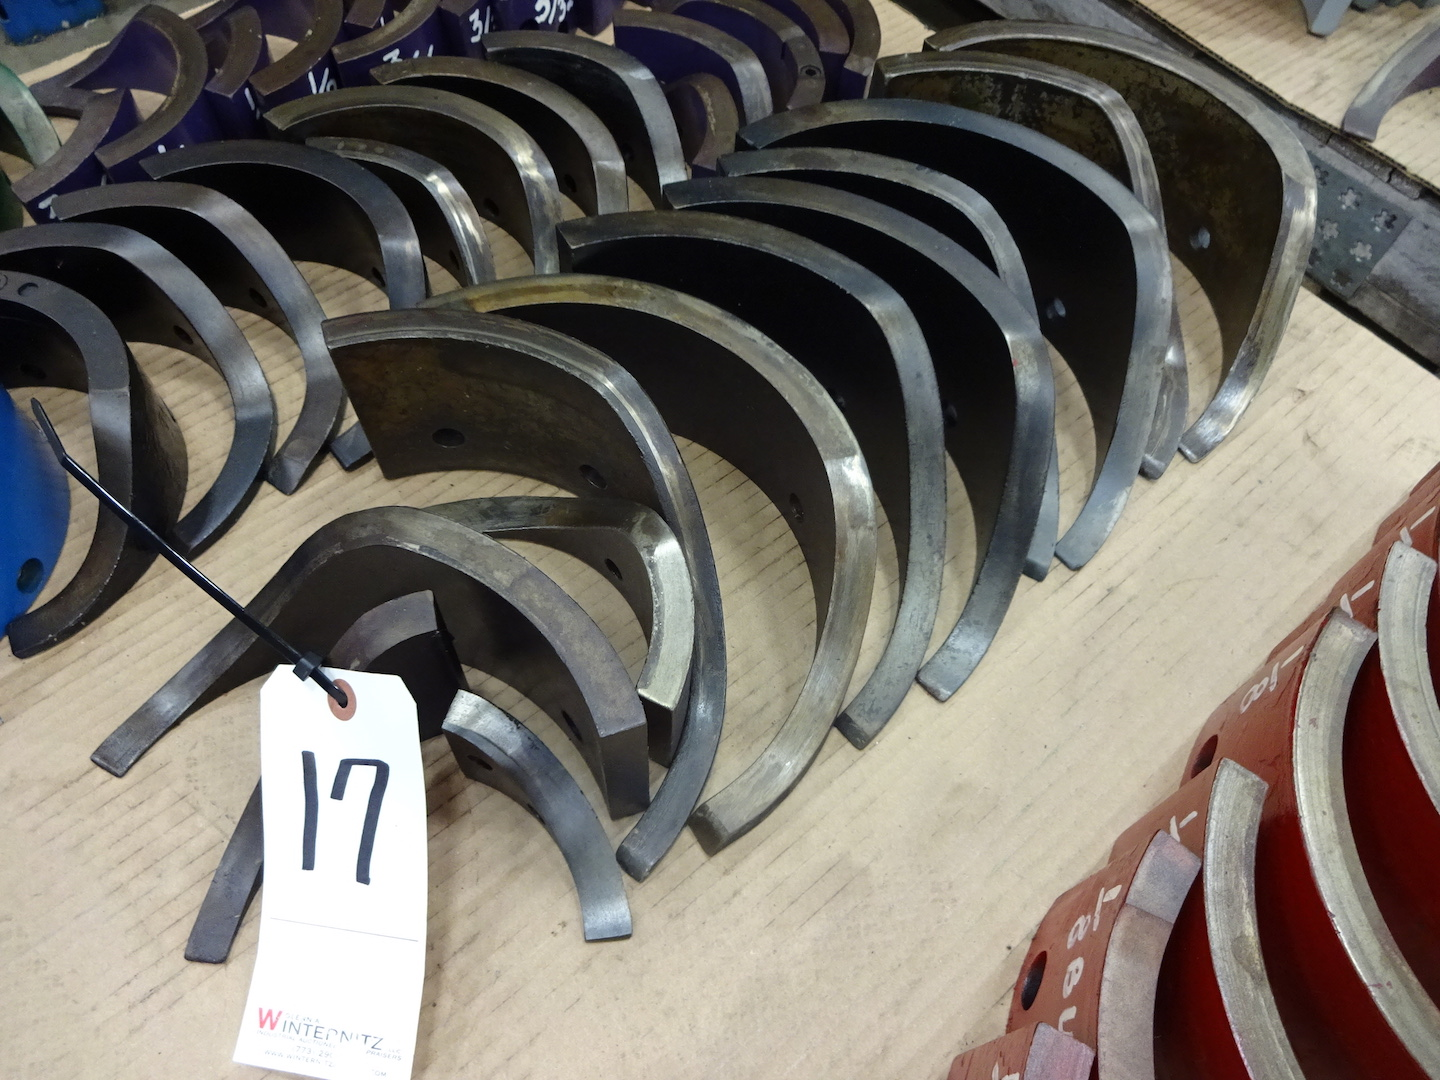 """Lot 17 - LOT - ASSORTED ACME 2-5/8"""" RB-8 CAMS"""